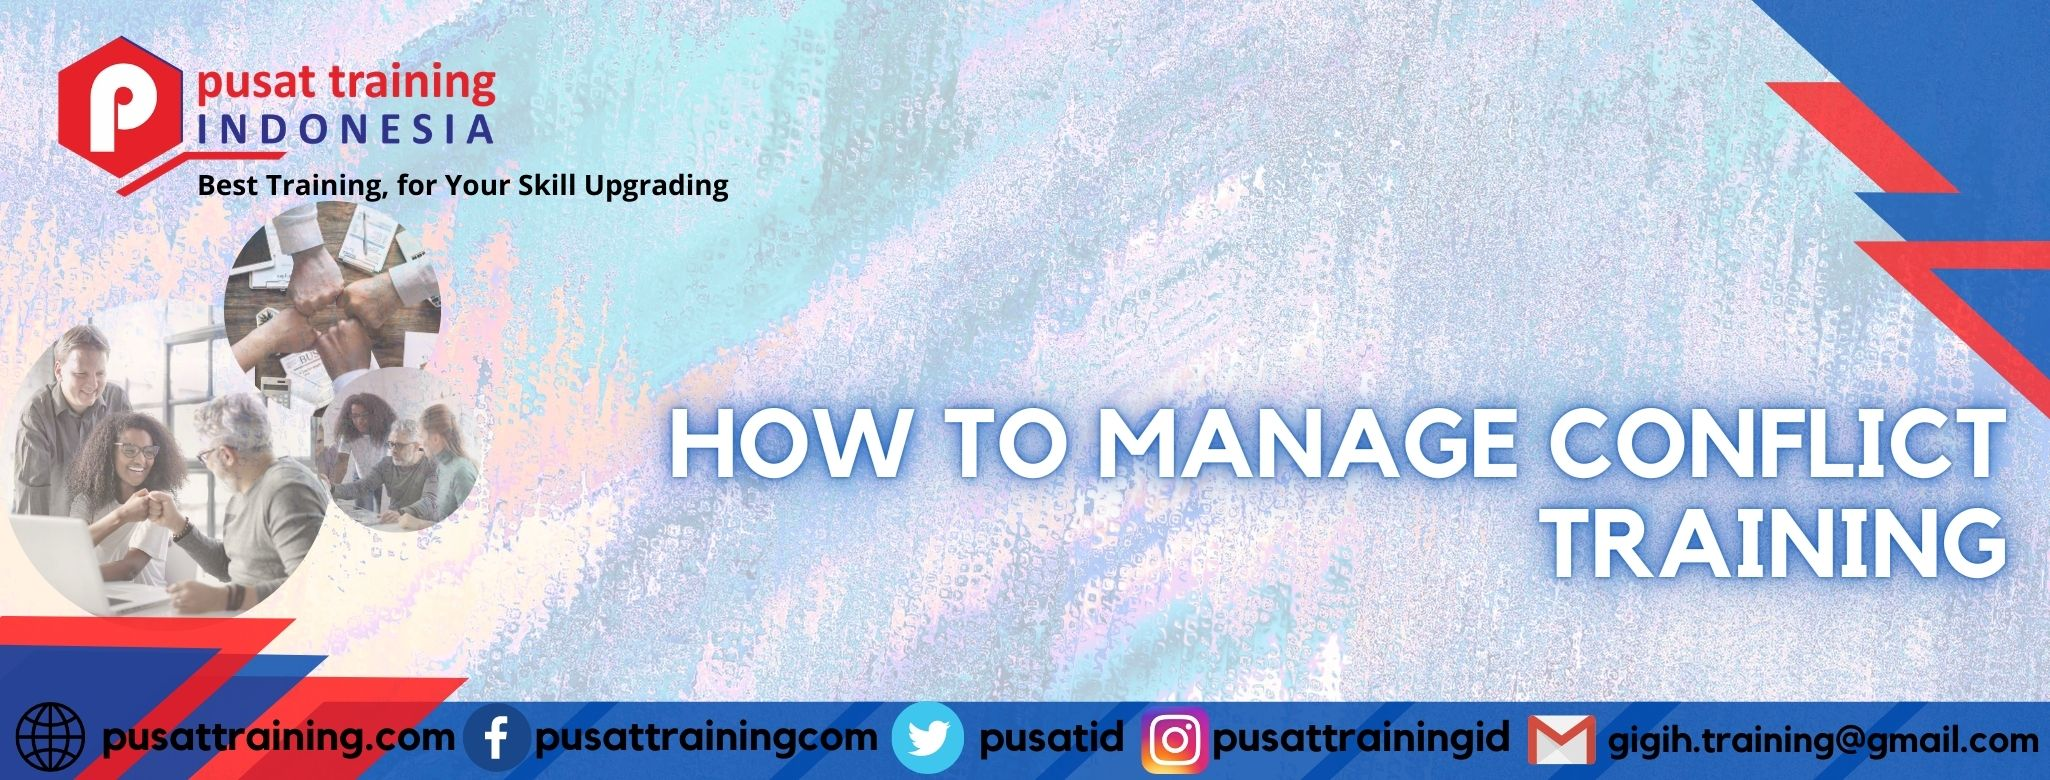 how-to-manage-conflict-training